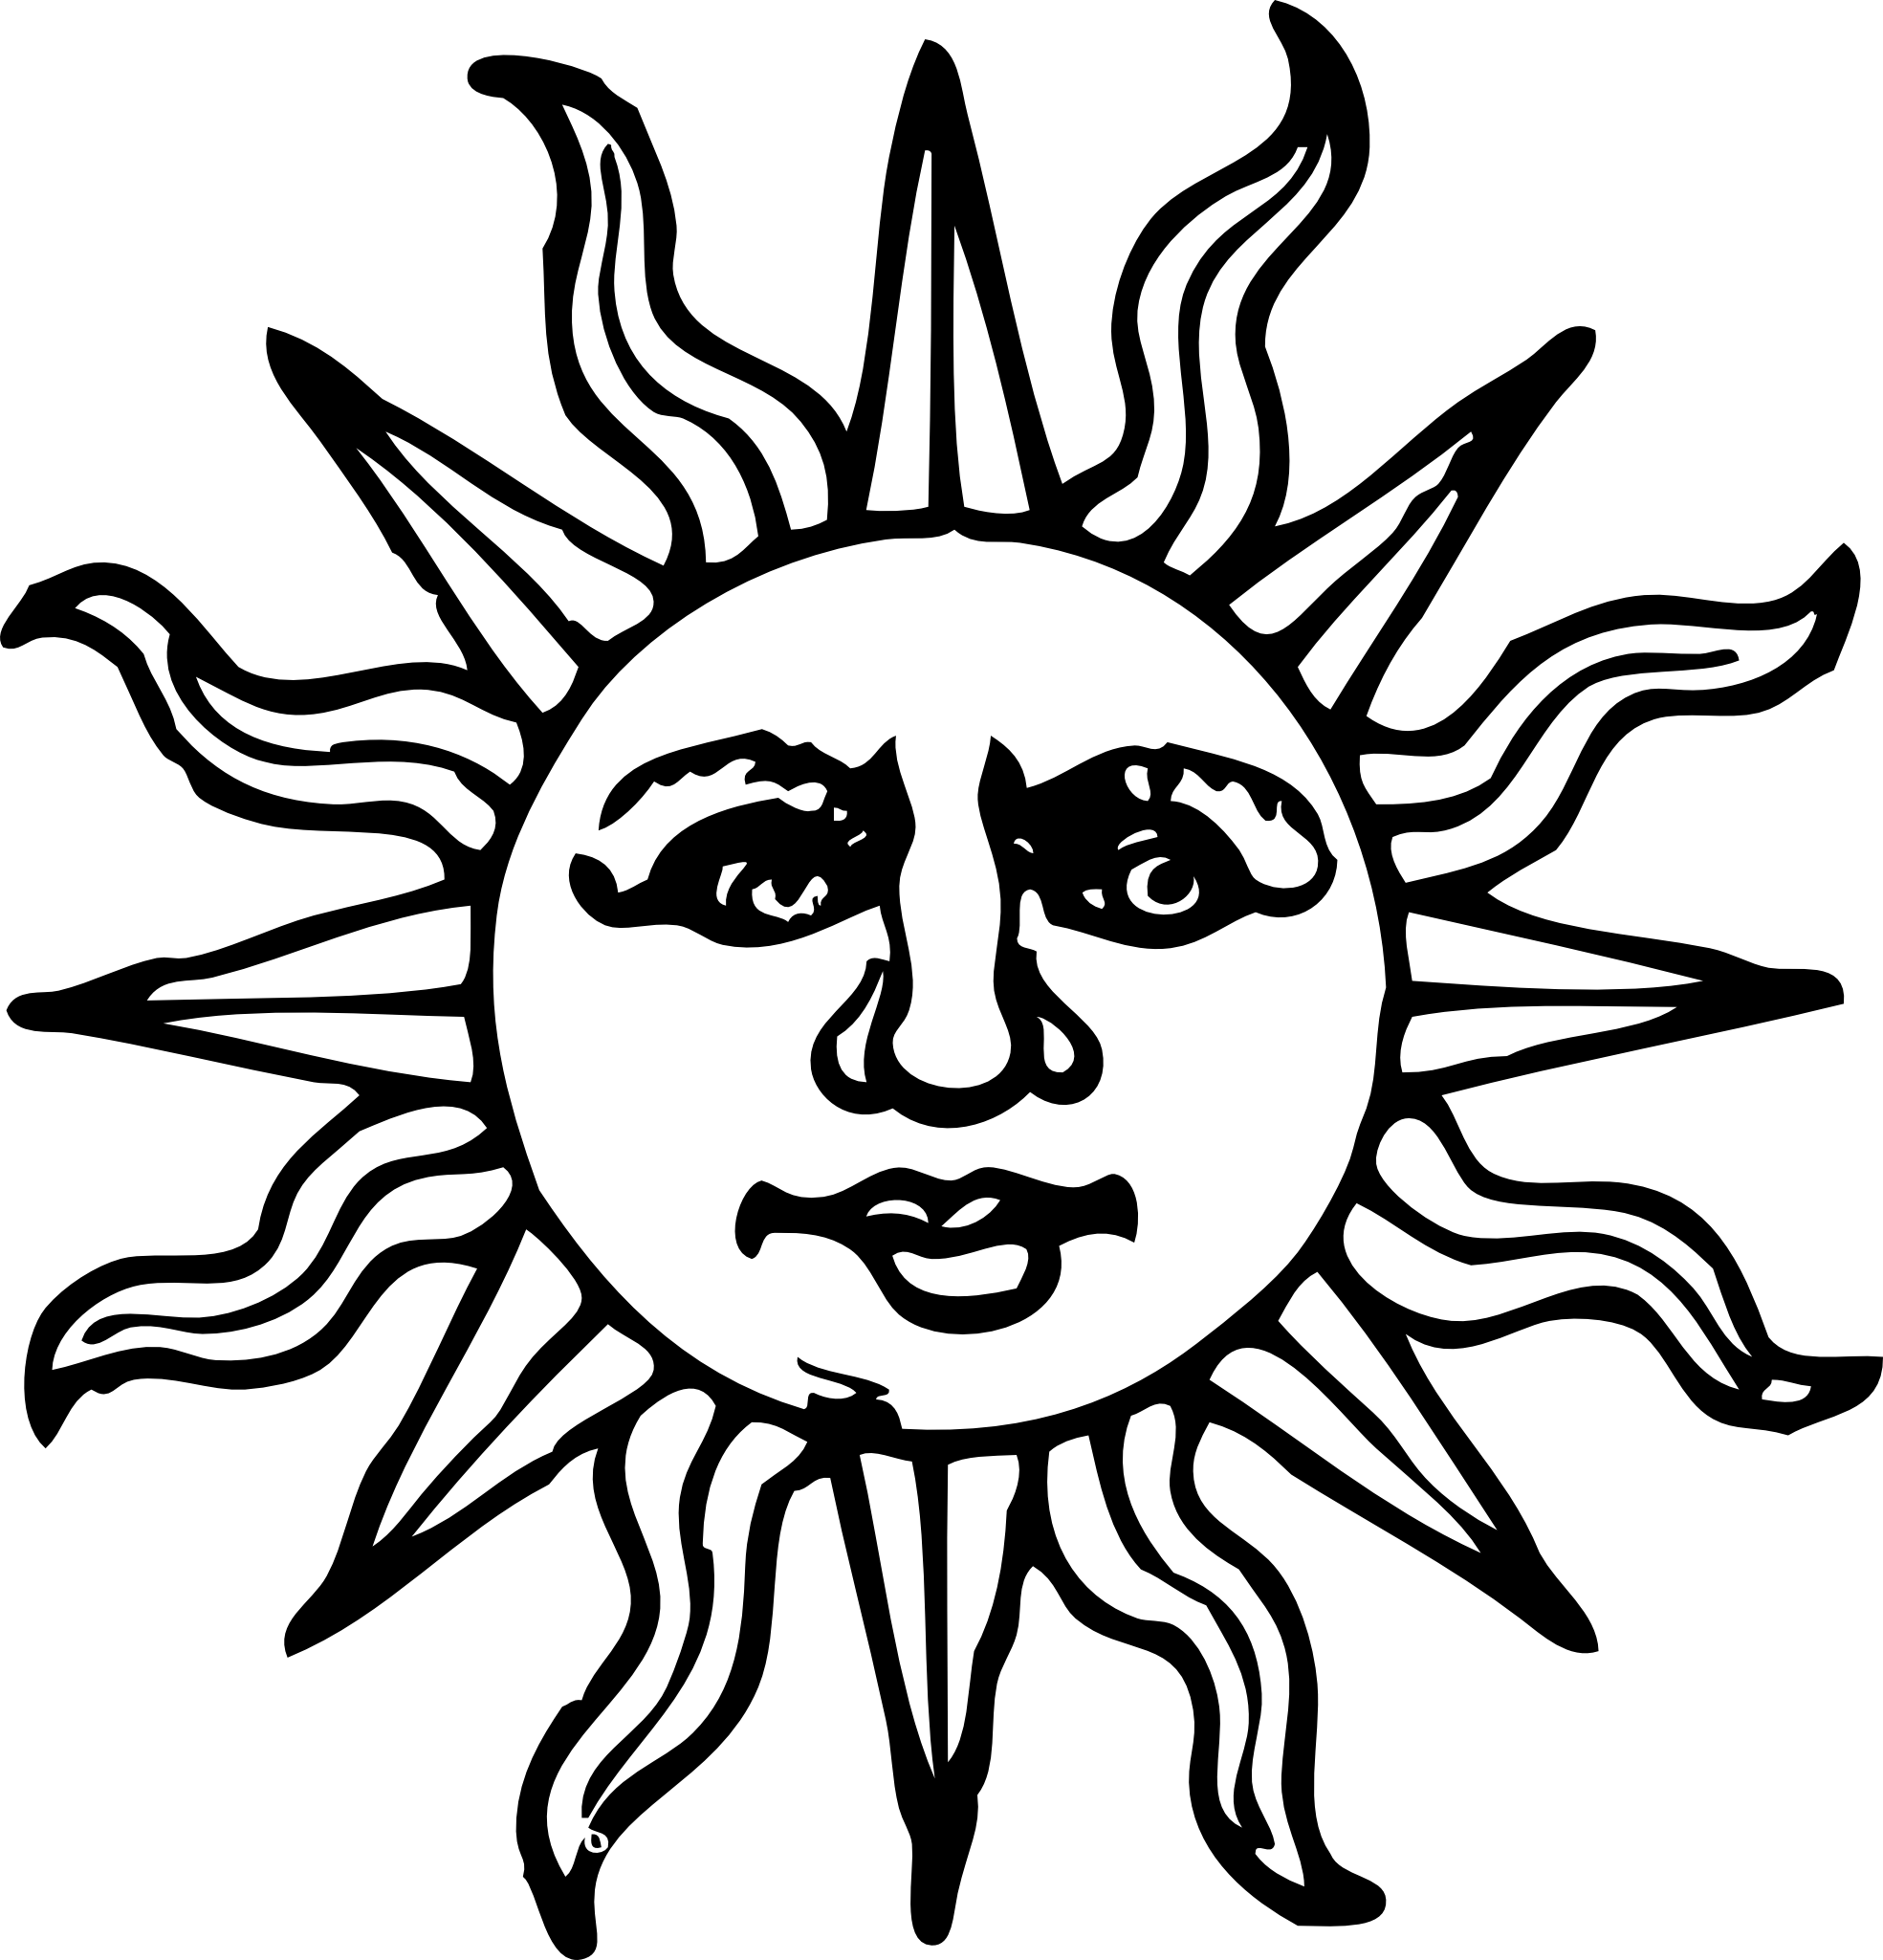 Mean sun man clipart clip art transparent Sun Drawing Black And White at GetDrawings.com | Free for personal ... clip art transparent